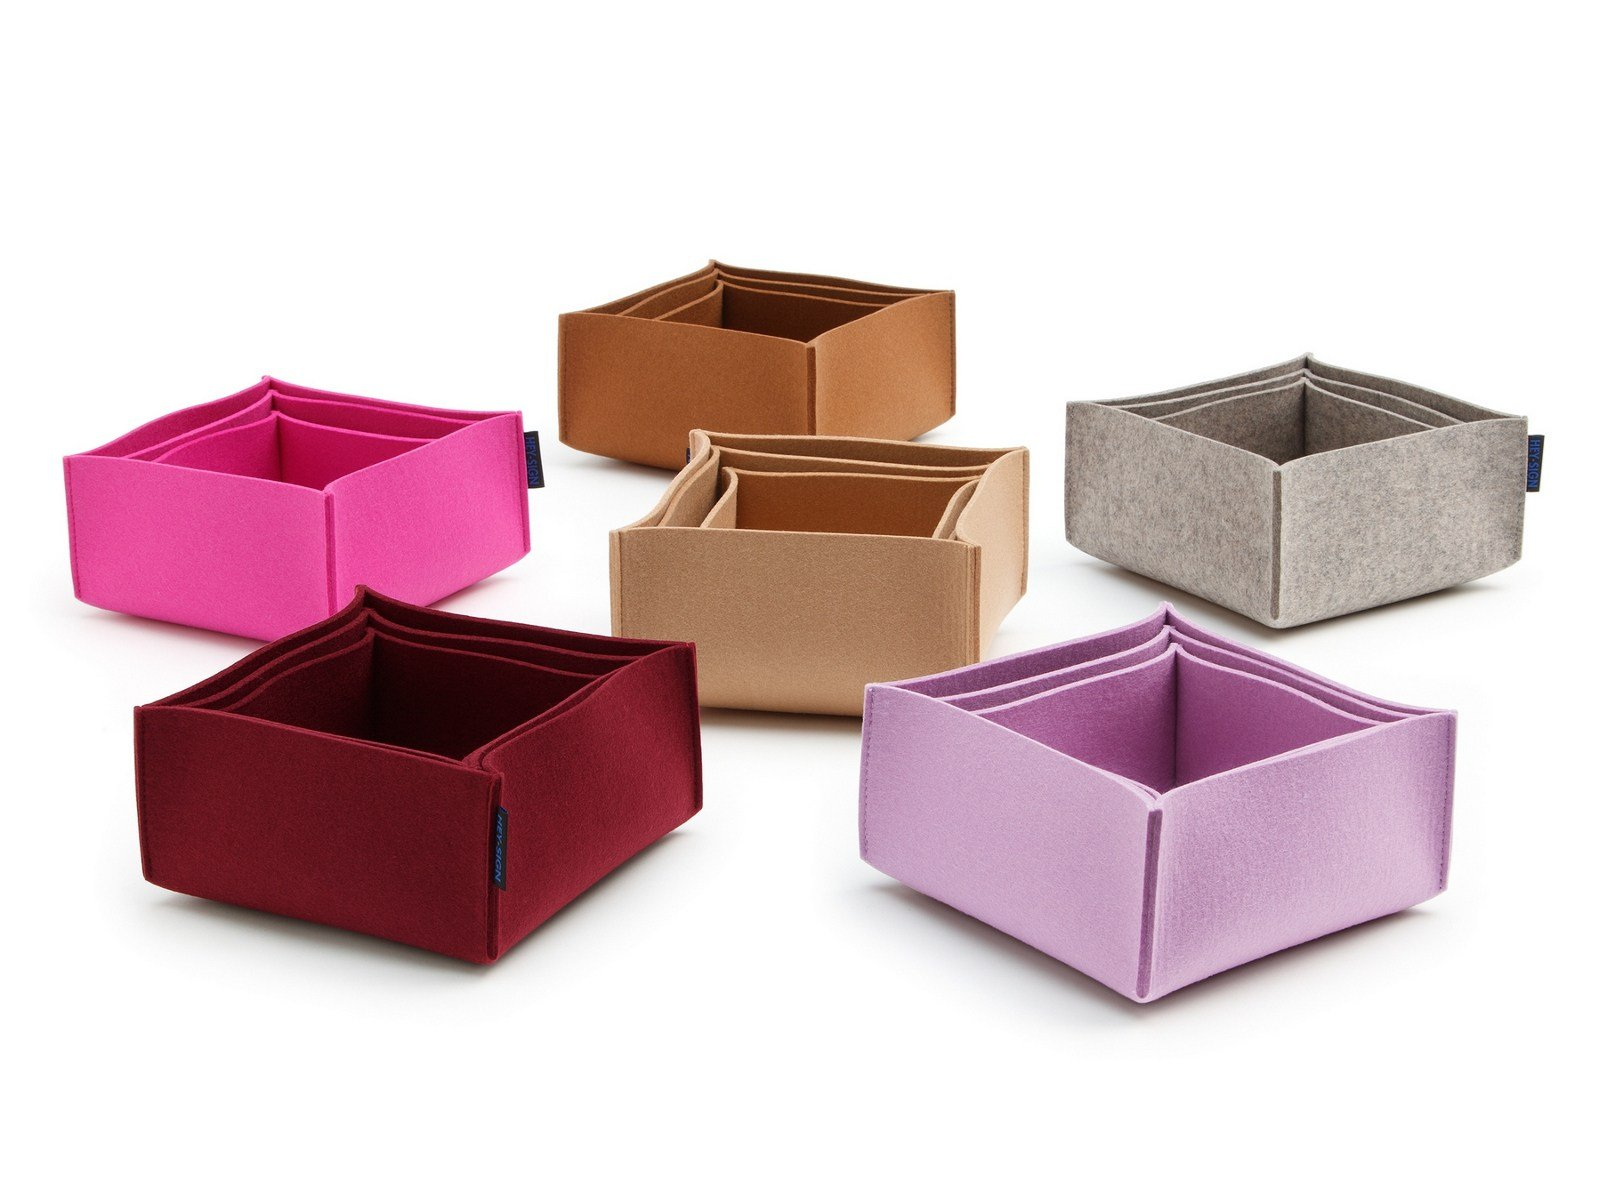 felt storage box box 2 by hey sign. Black Bedroom Furniture Sets. Home Design Ideas